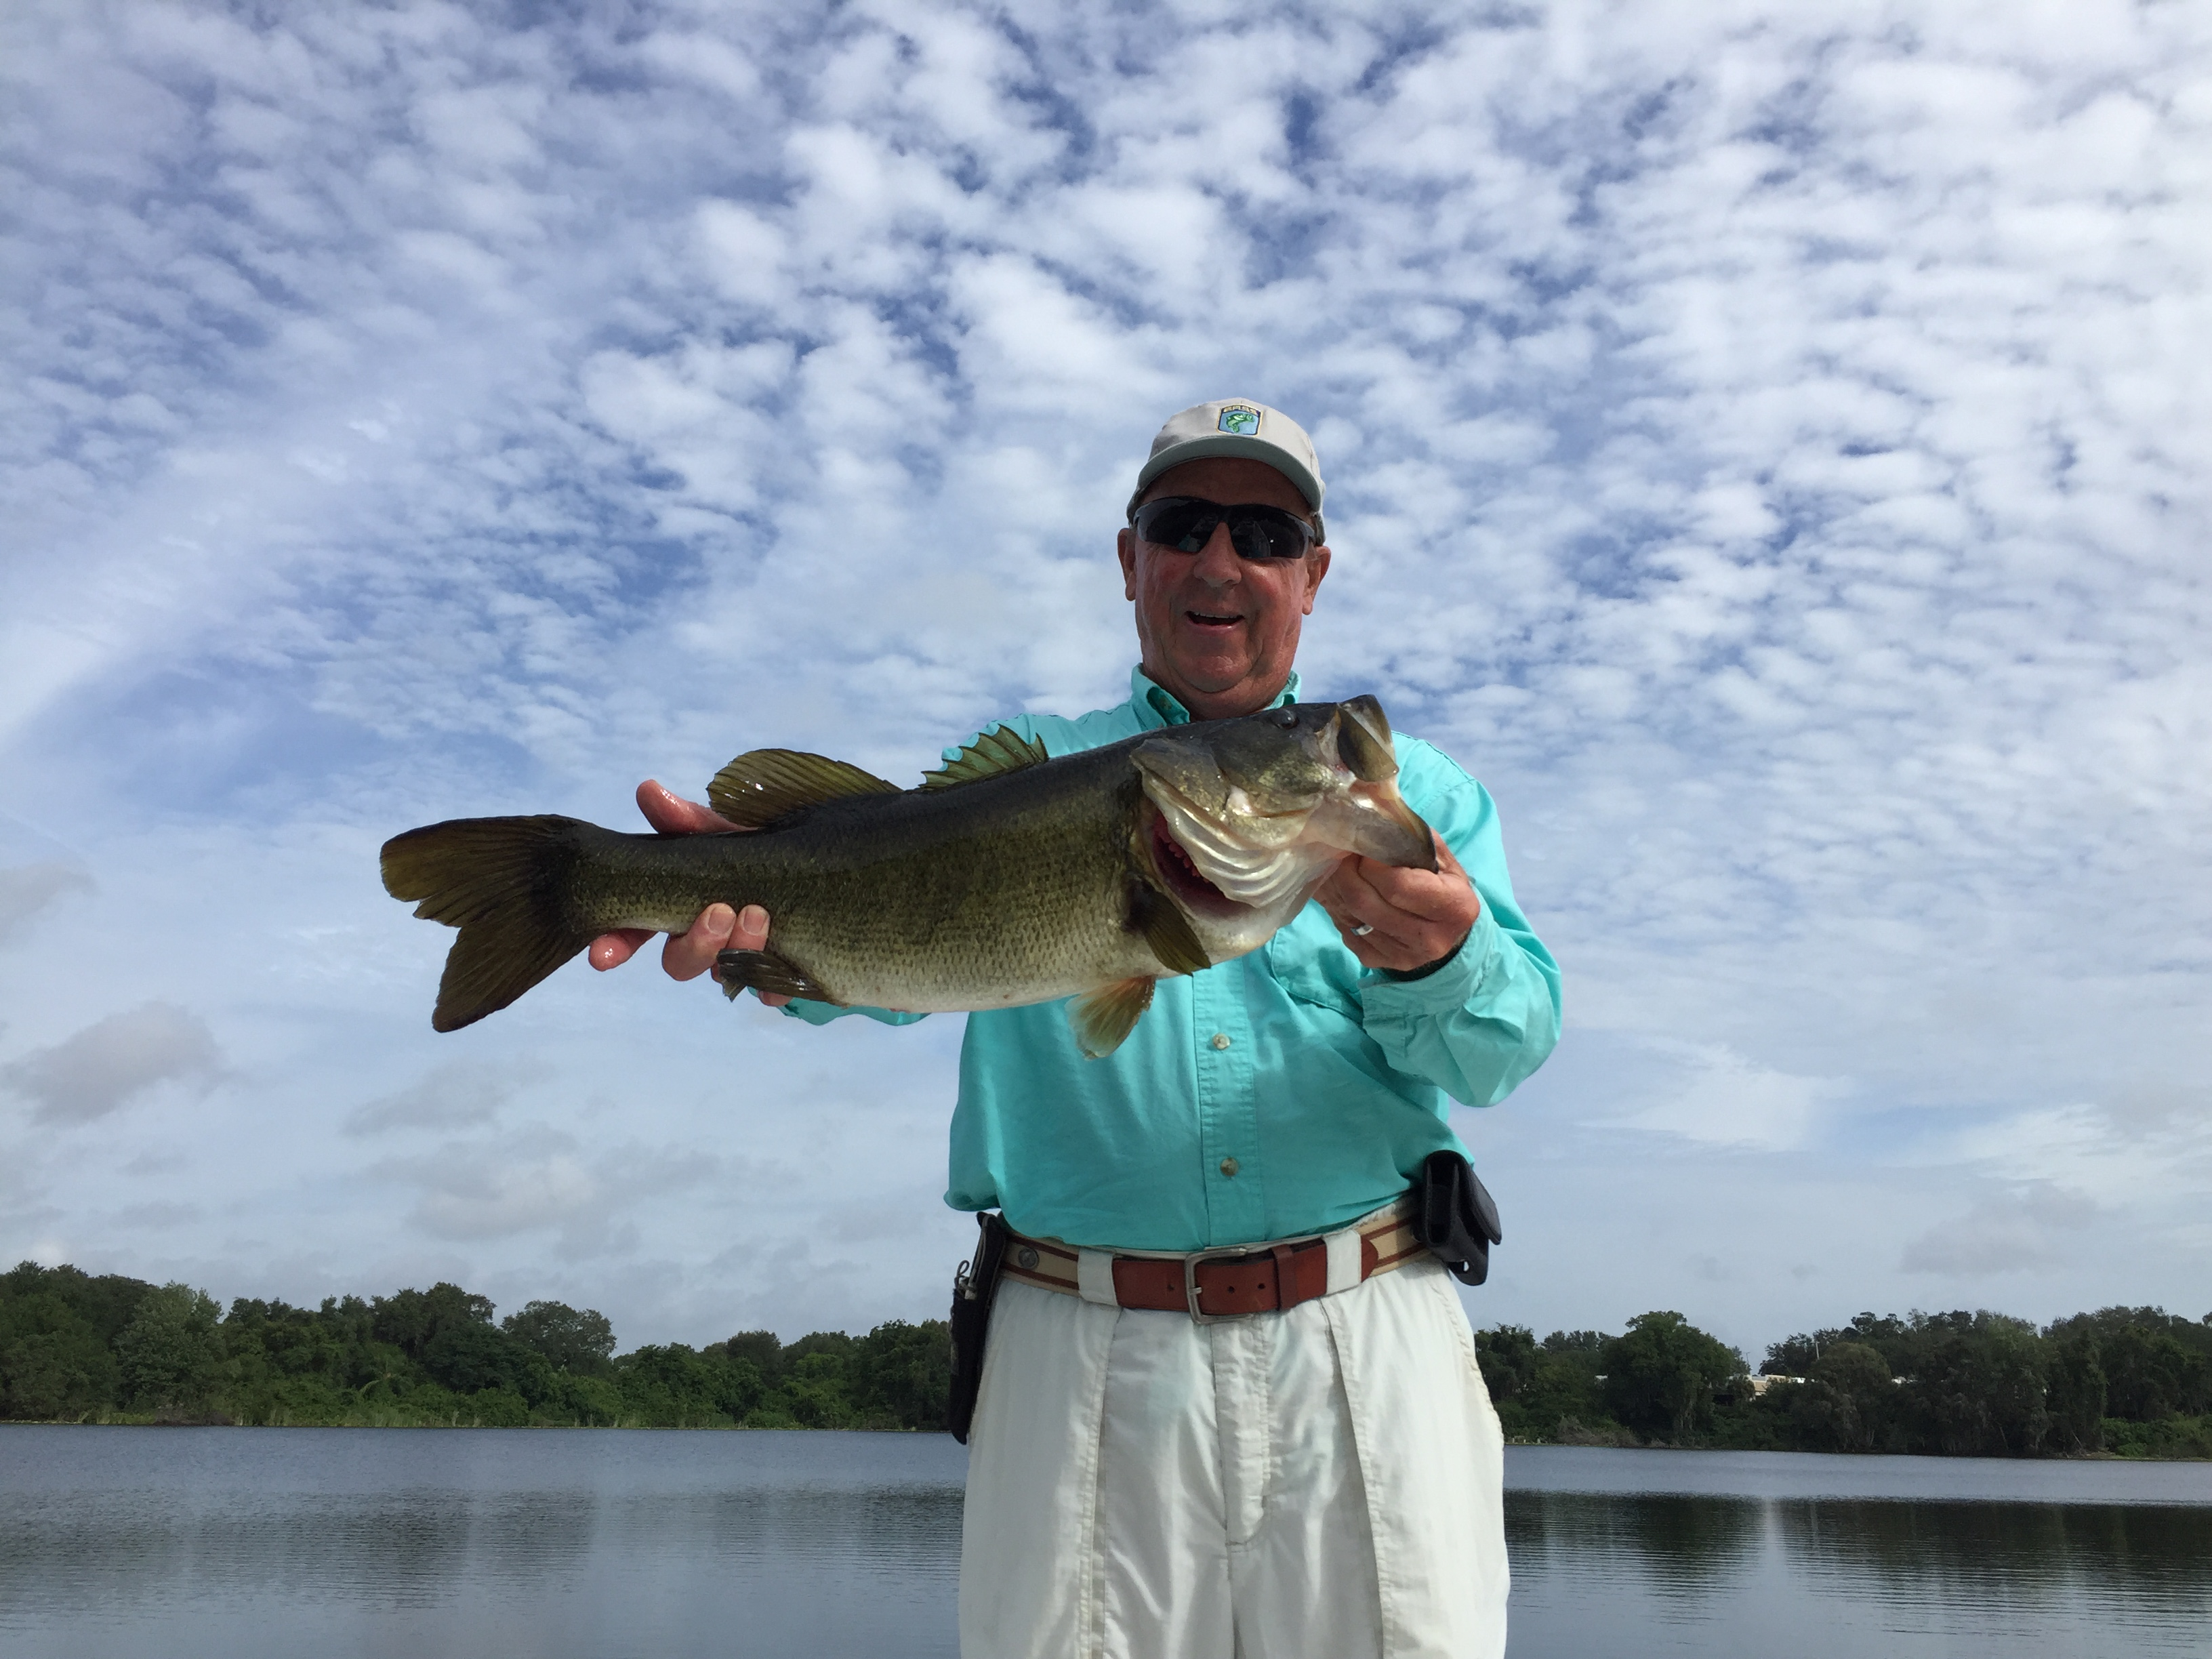 Tmc guide services central florida winter haven for Bass fishing disney world